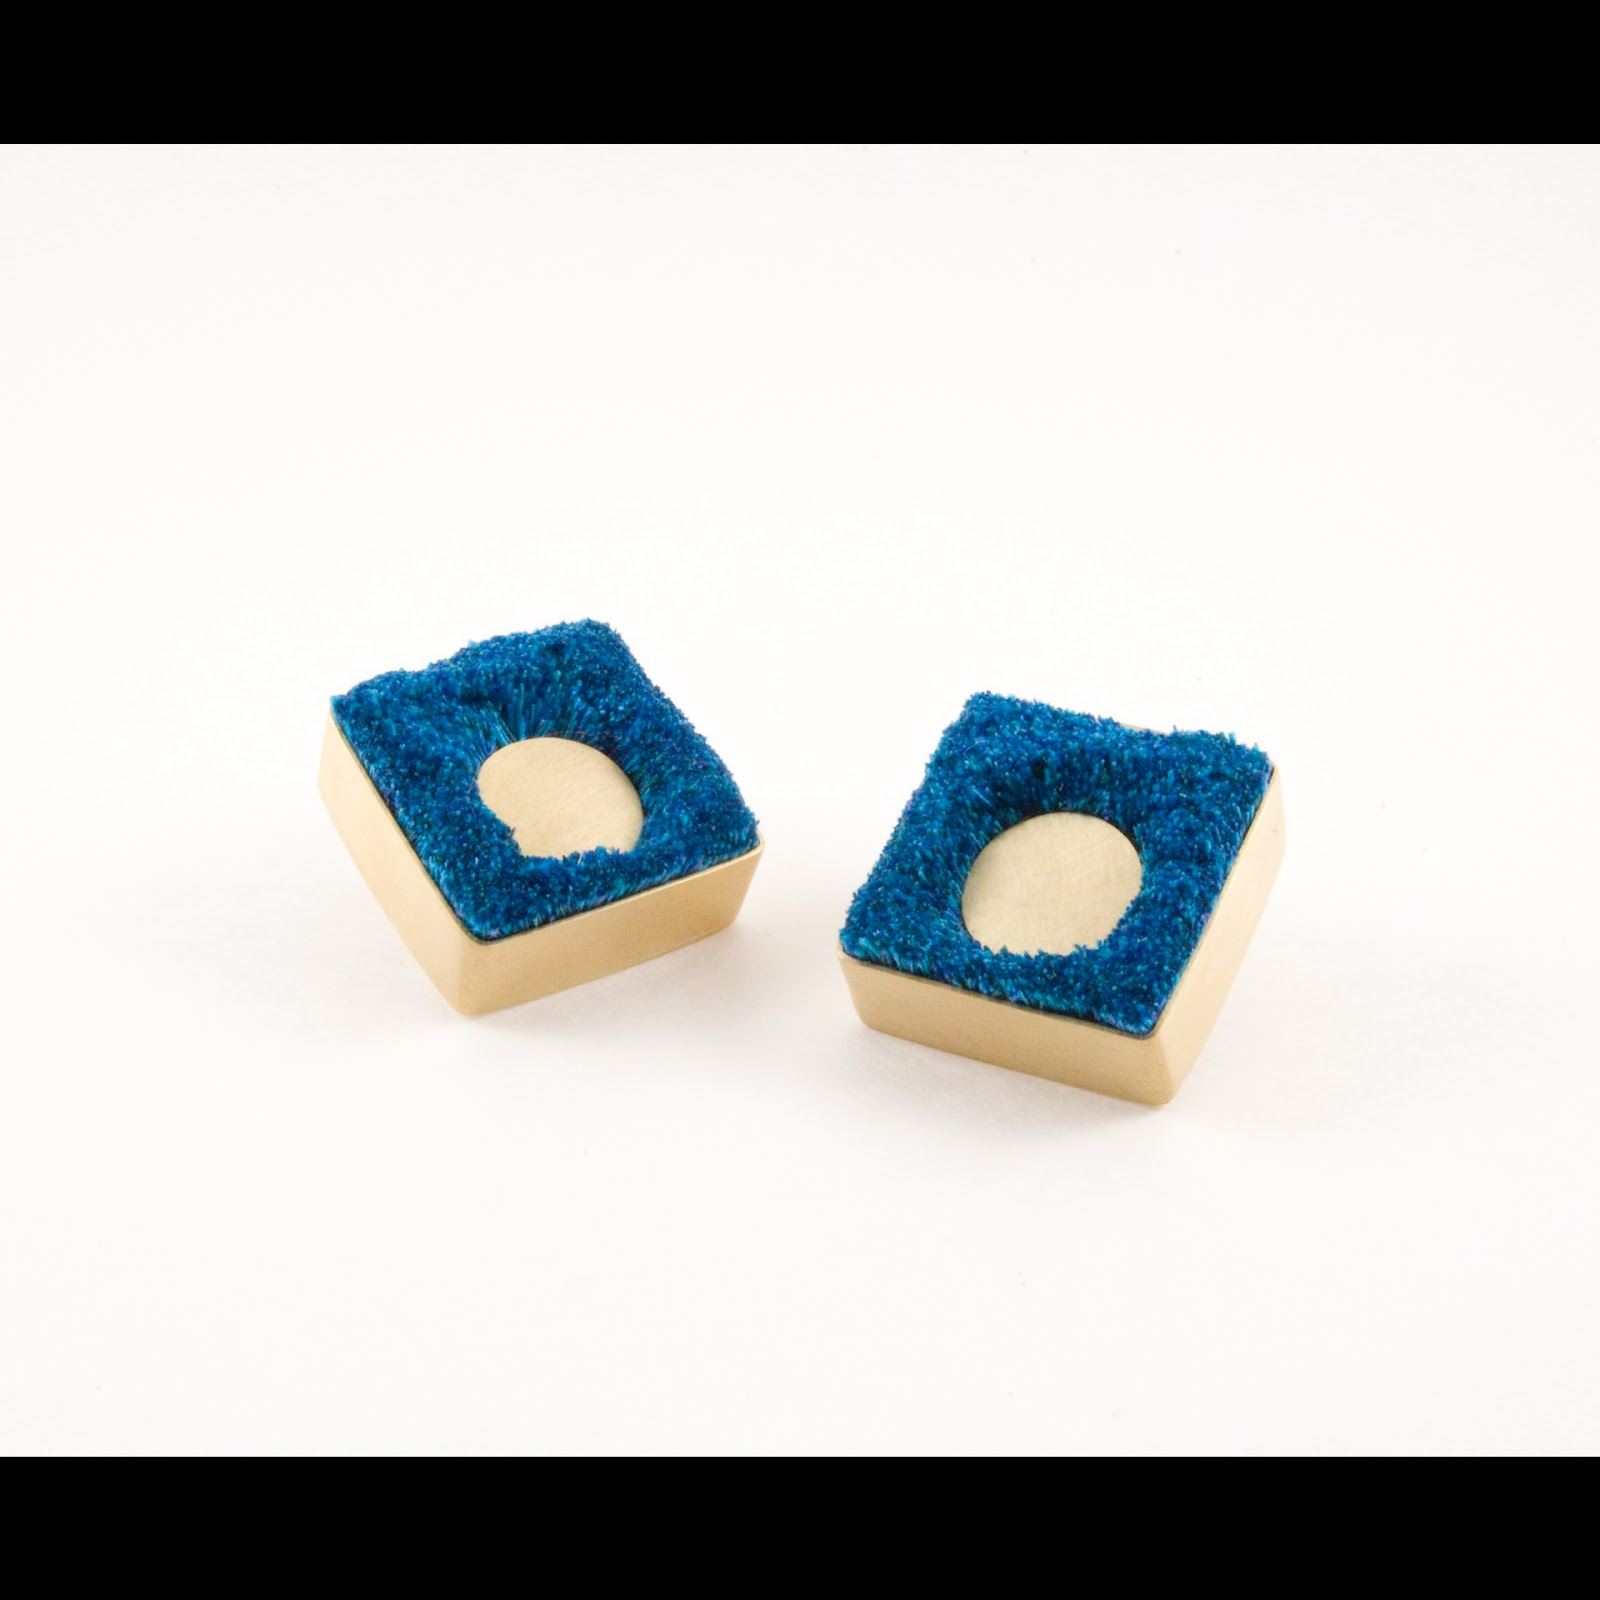 Blue-Square-Dot-Earrings-1920x1920.jpg